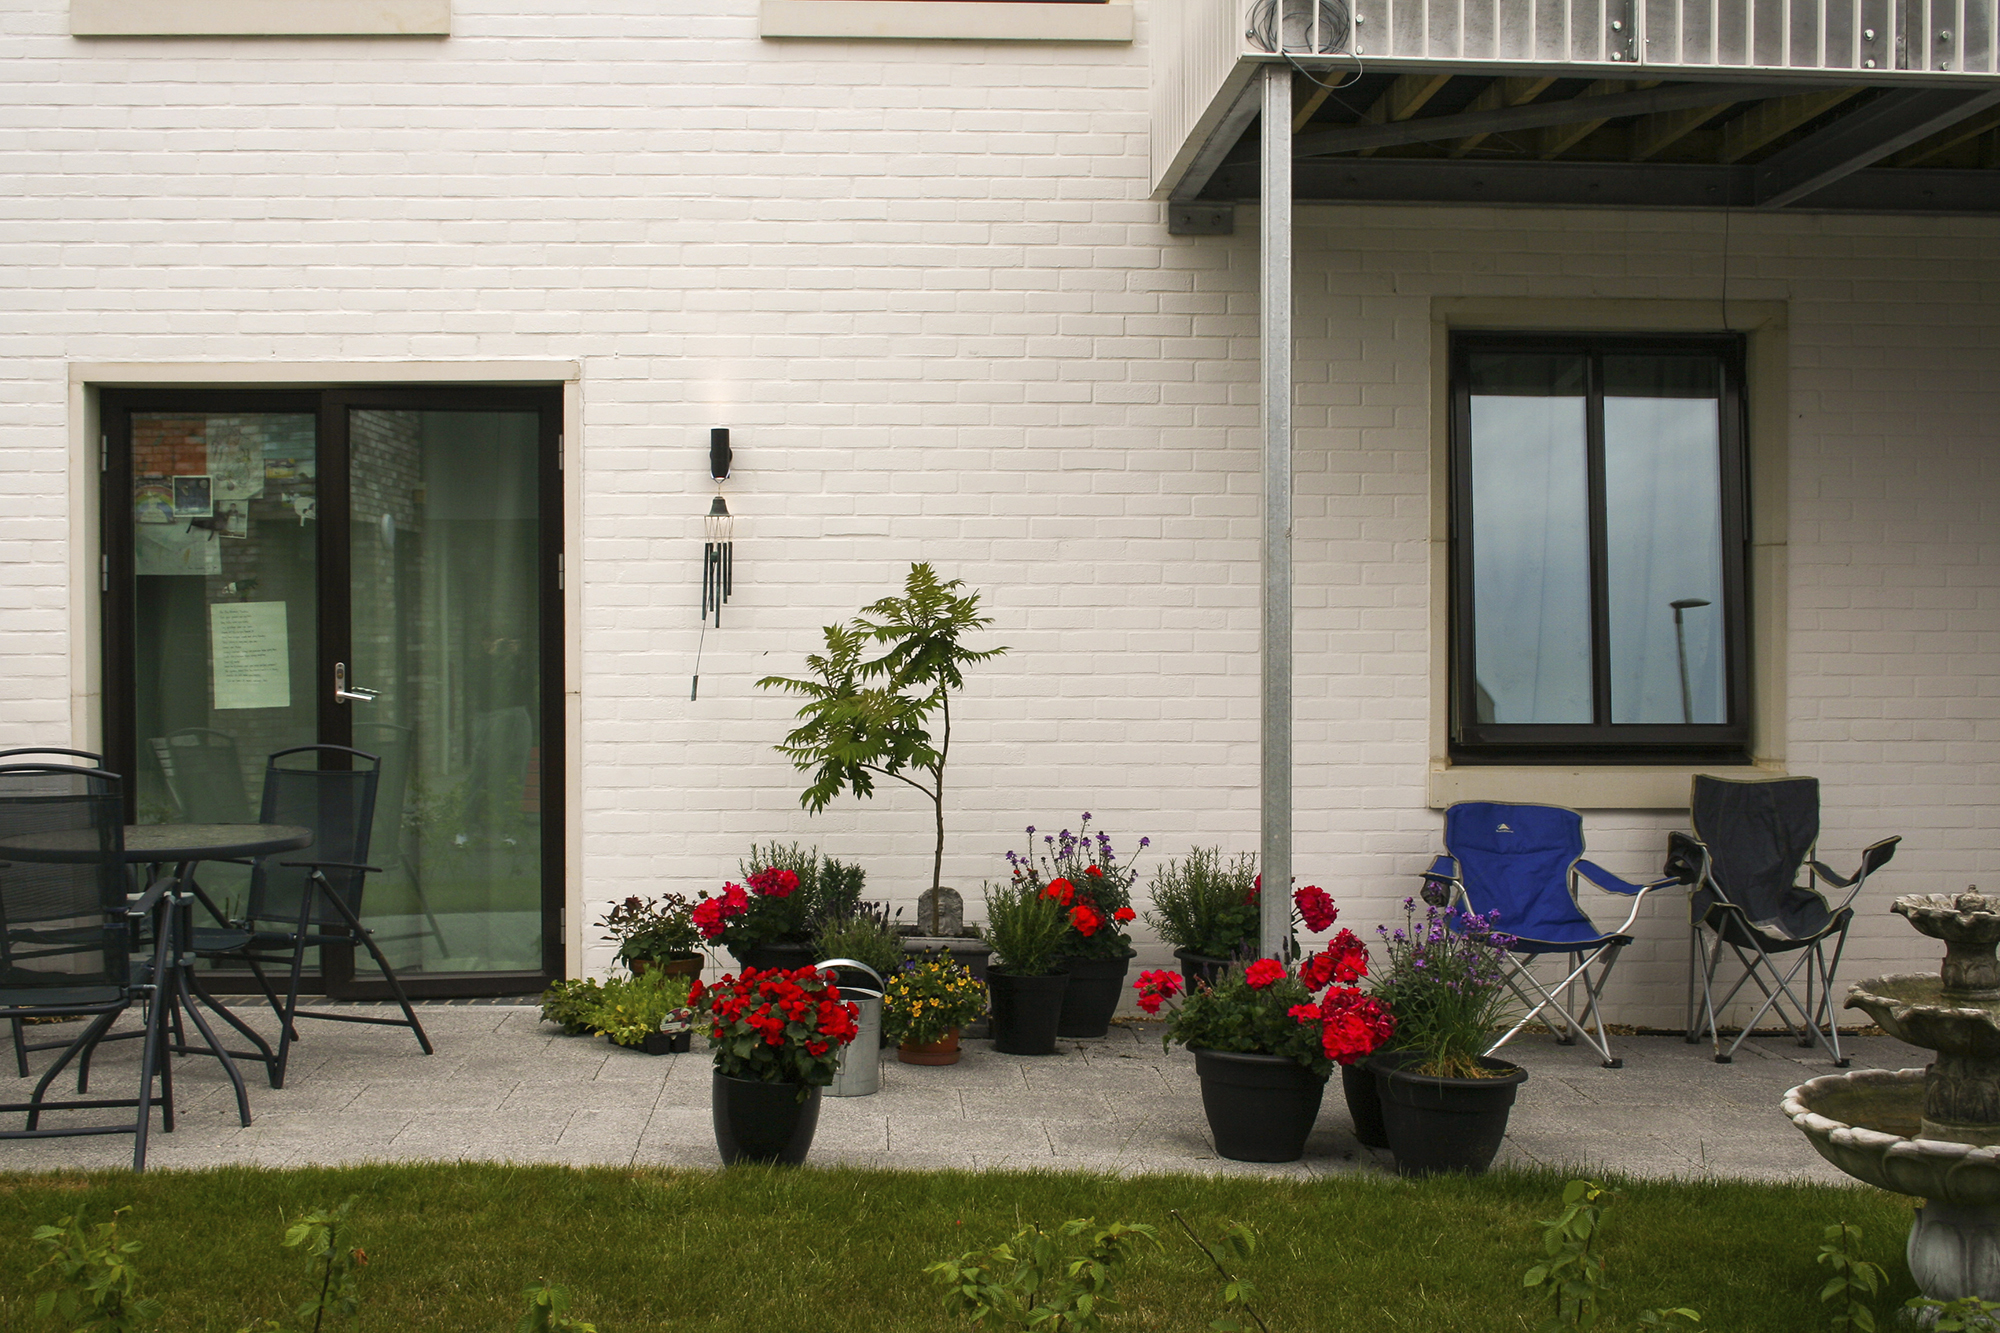 Fifteen households remain from the original 20-strong cohousing group set up in 2008